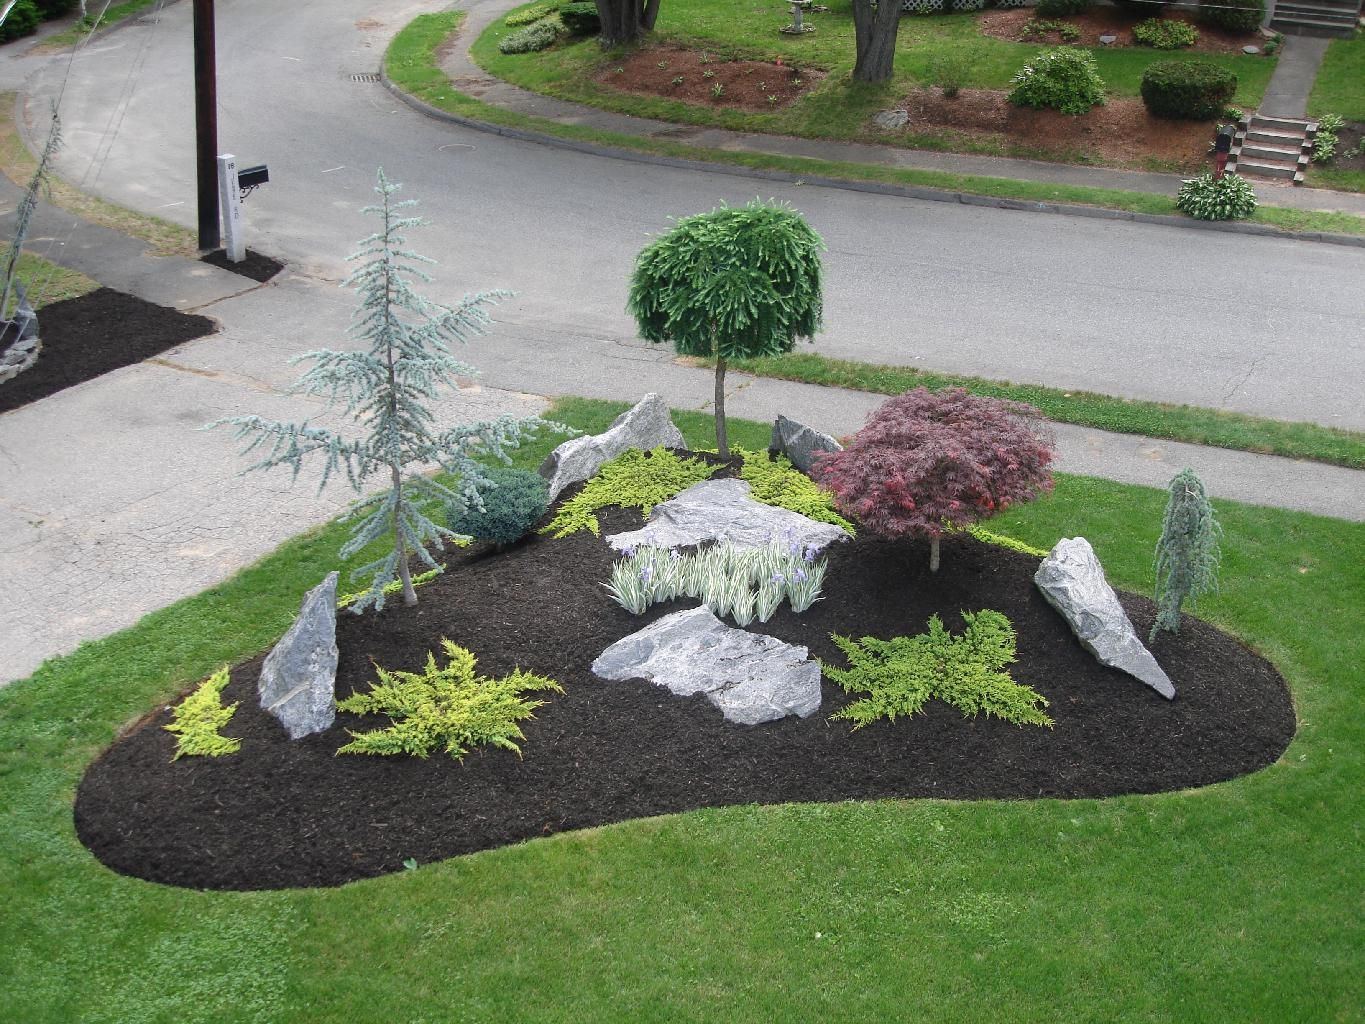 Simple landscape designs with rock beds google search for Landscape design ideas